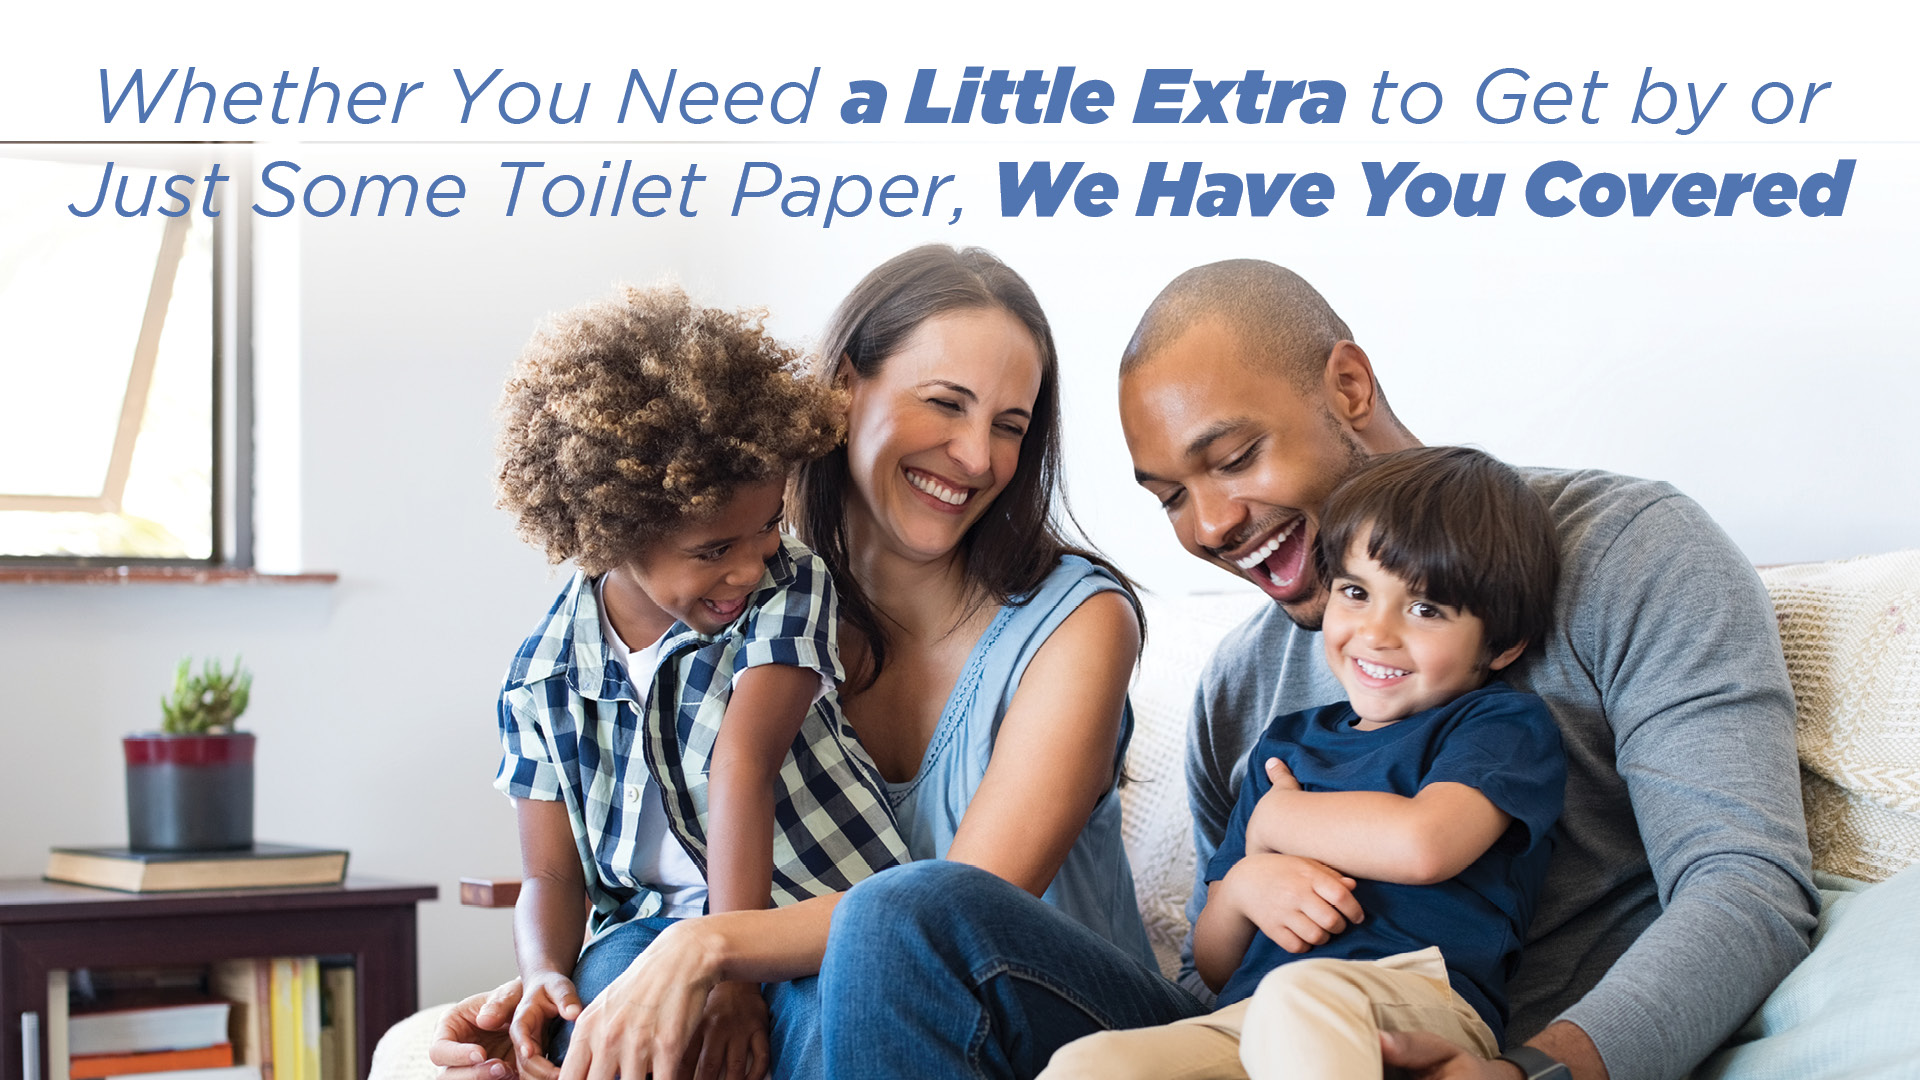 Whether You Need a Little Extra to Get by or Just Some Toilet Paper, We Have You Covered